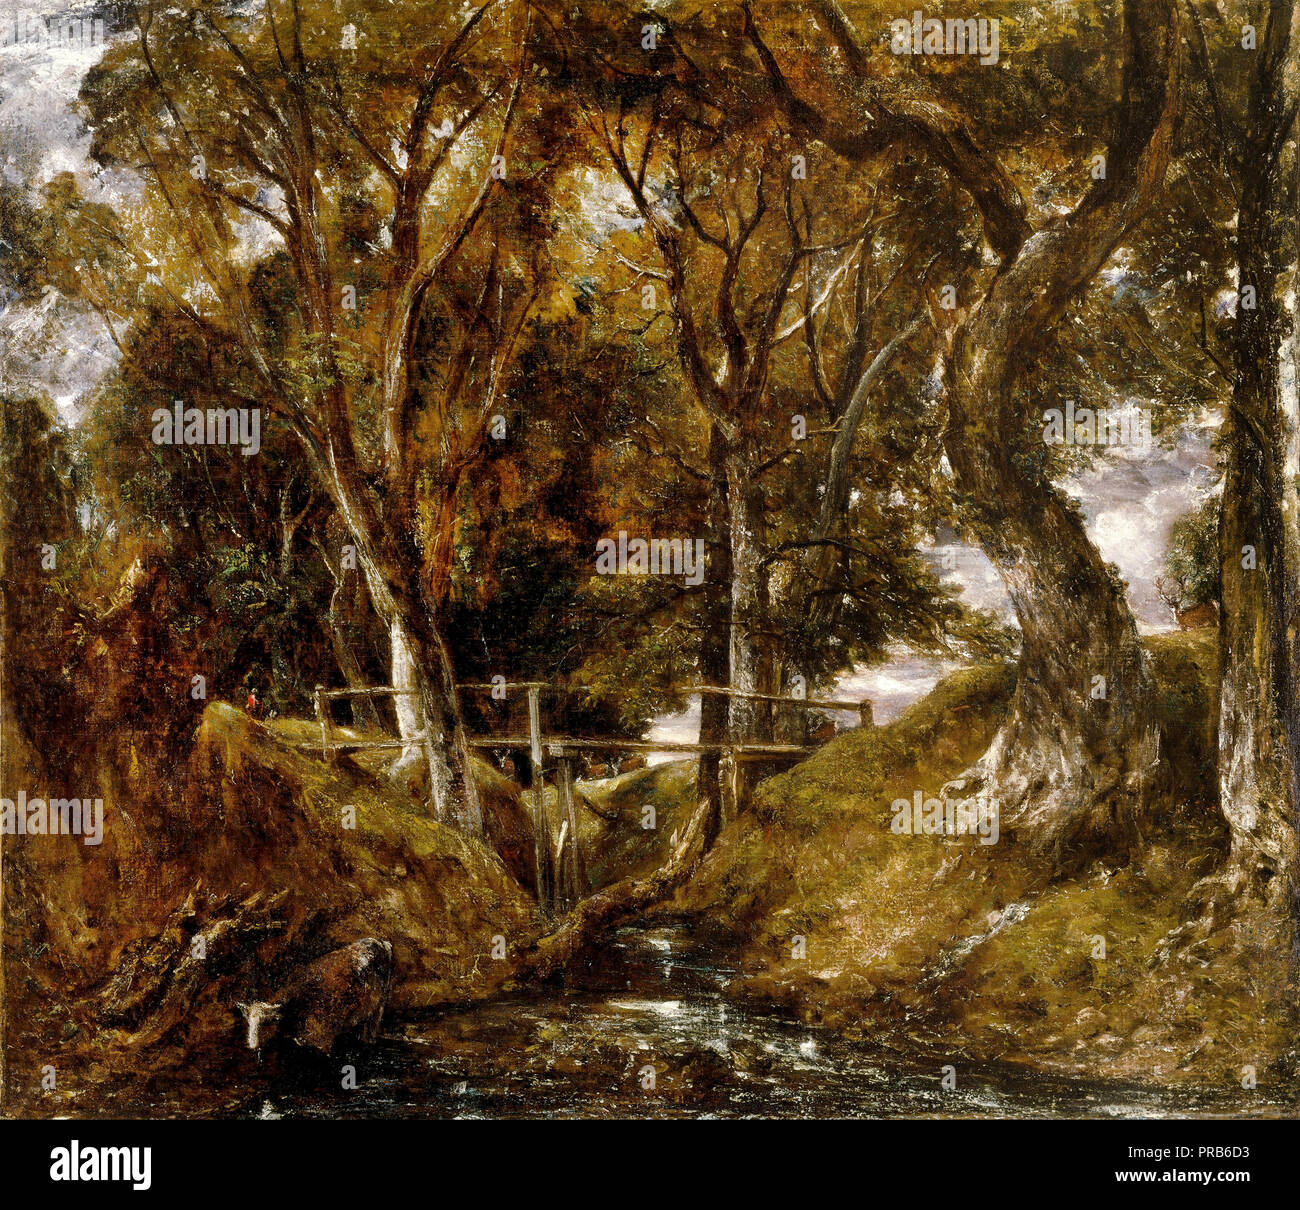 John Constable, The Dell at Helmingham Park 1830 Oil on canvas, Nelson-Atkins Museum of Art, Kansas City, Missouri, USA. - Stock Image